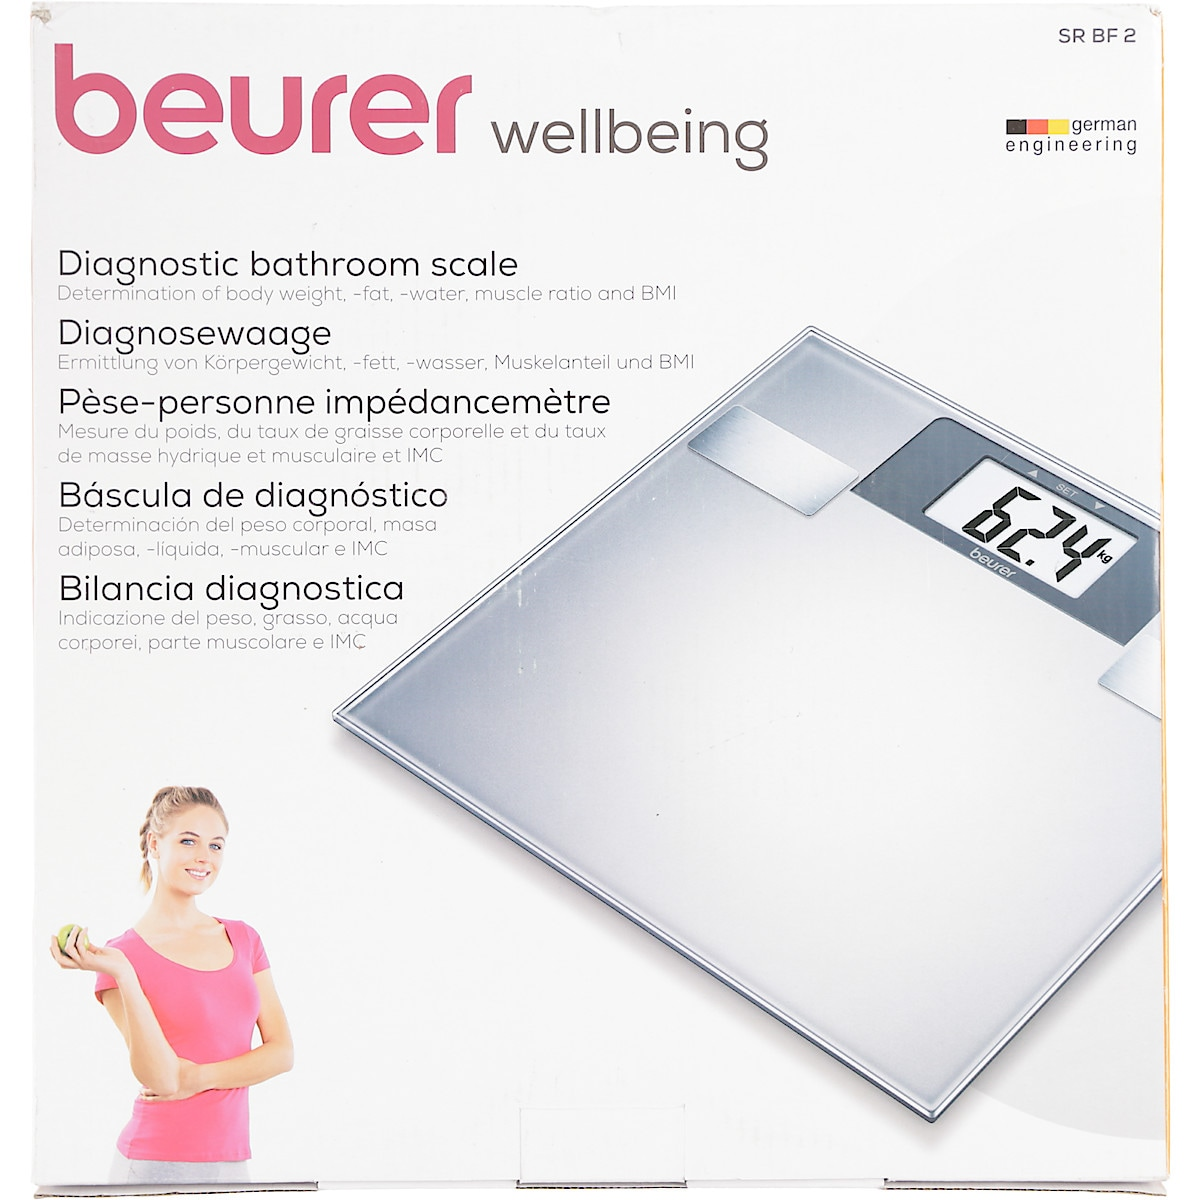 Beurer SR BF2 BMI Bathroom Scale